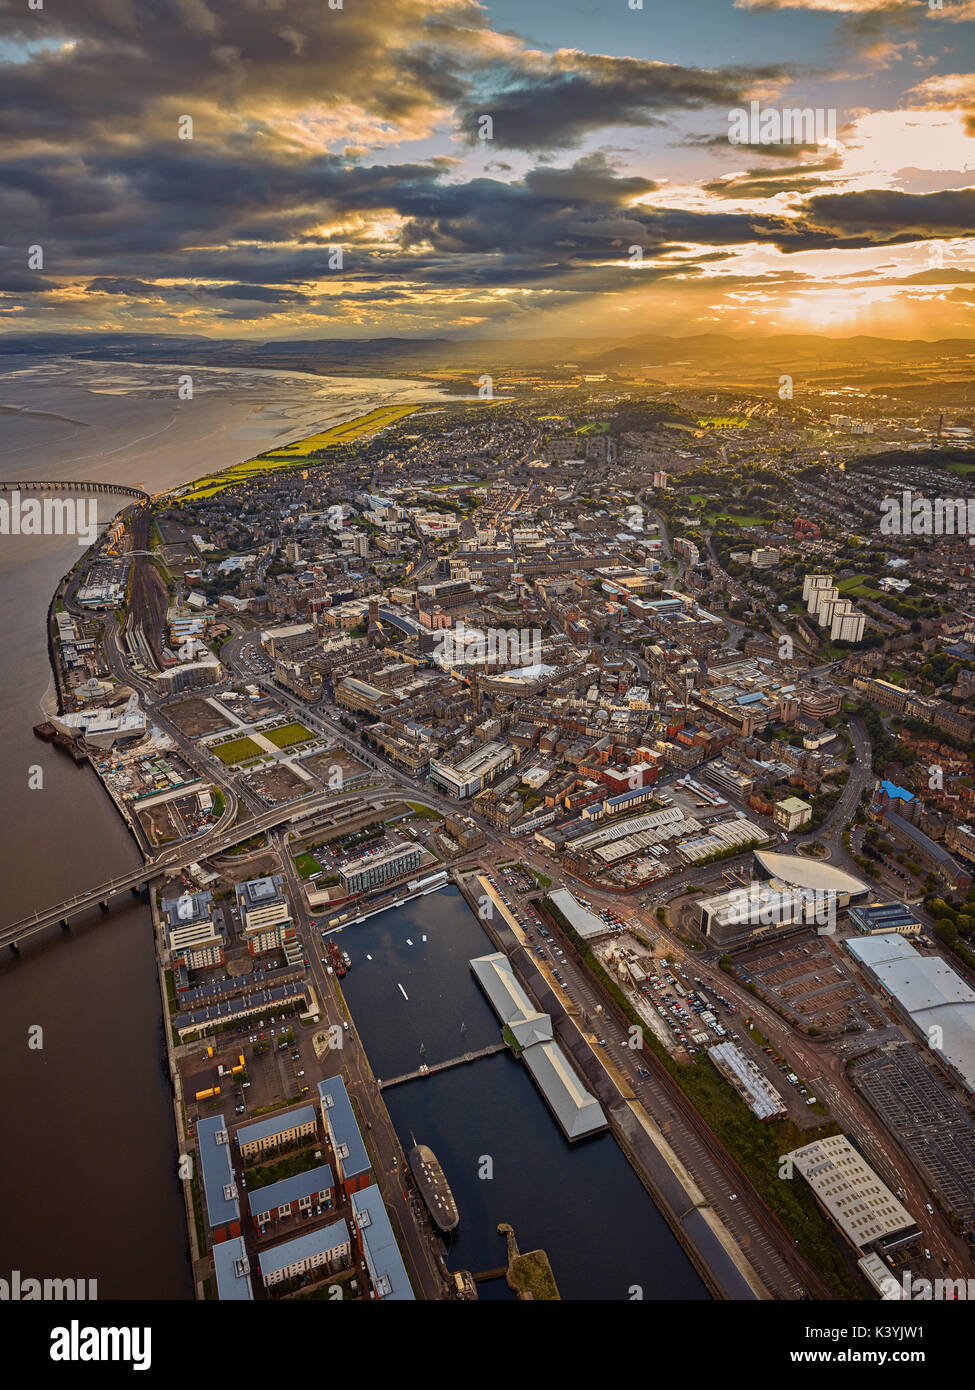 An aerial capture of the City of Dundee as the sun sets over the city Stock Photo